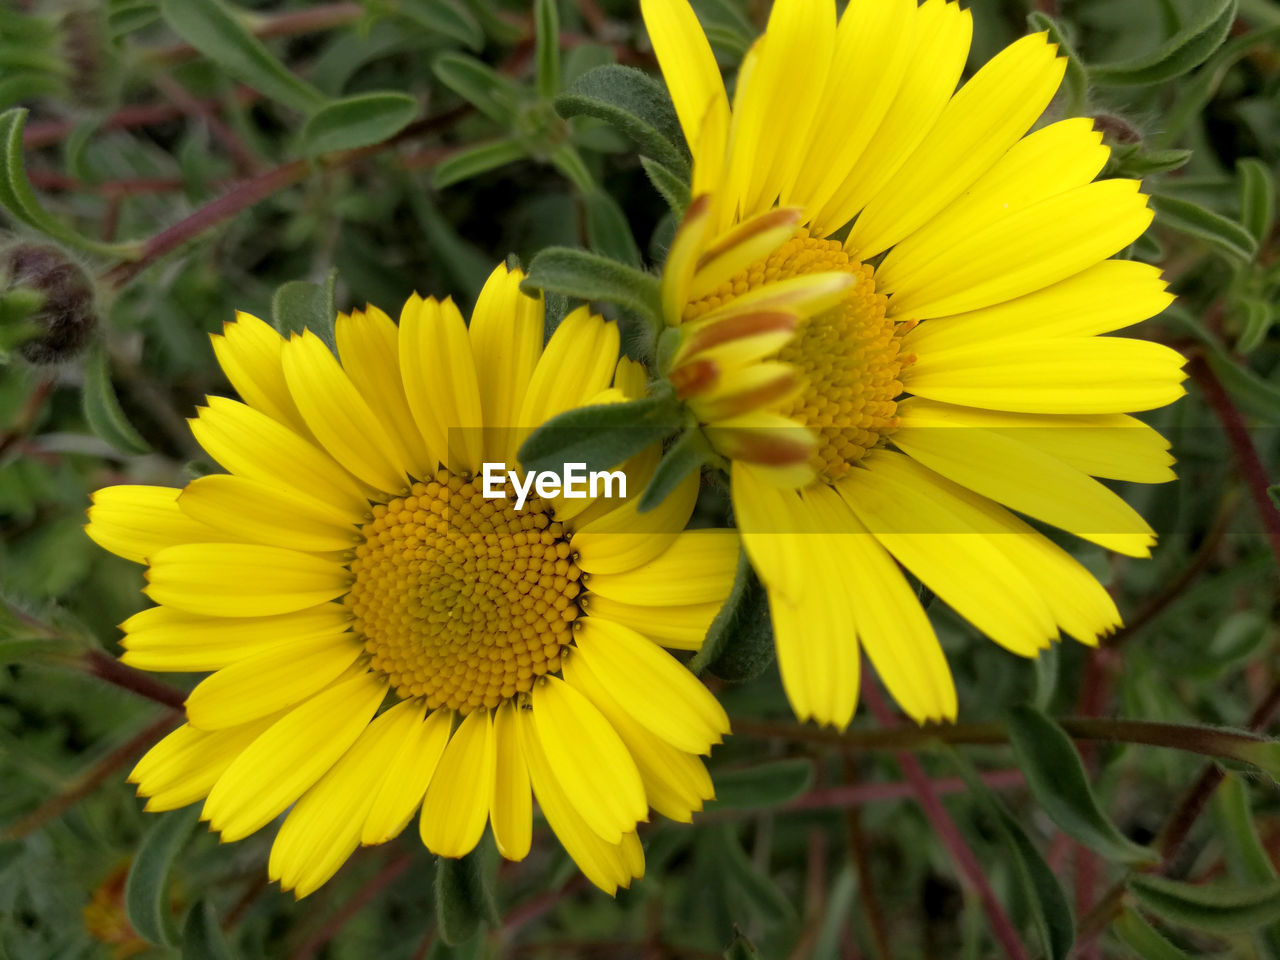 flower, yellow, petal, fragility, growth, nature, beauty in nature, freshness, flower head, plant, blooming, sunflower, outdoors, no people, day, close-up